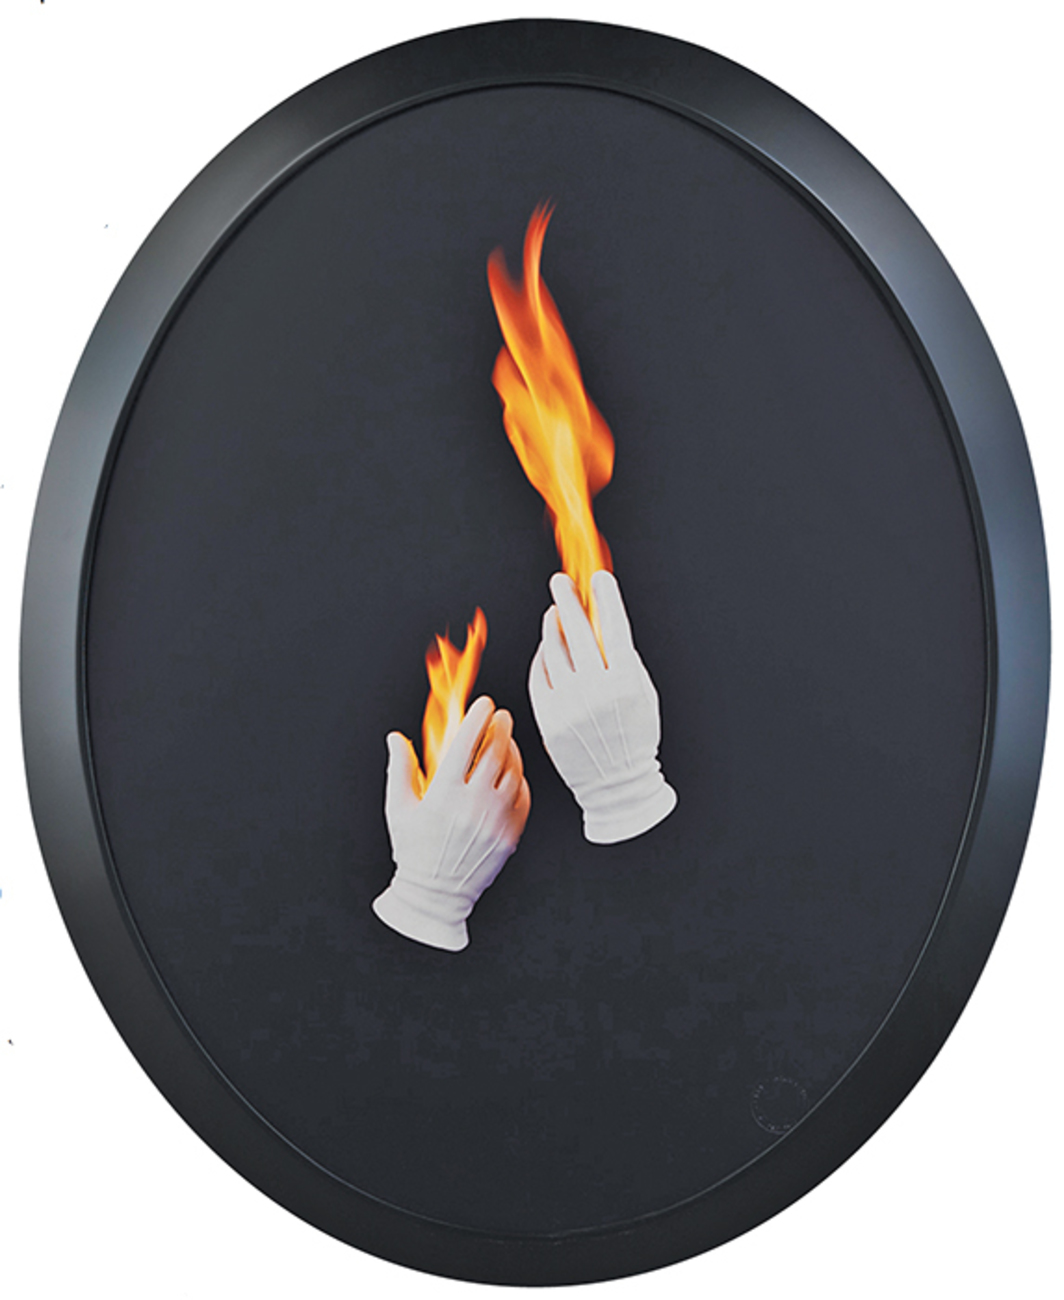 "Sarah Charlesworth, Trial by Fire, 1992–93, Cibachrome, lacquered wood frame, 41 1/4 × 33 1/2"". From the series ""Natural Magic,"" 1992–93. © The Estate of Sarah Charlesworth."